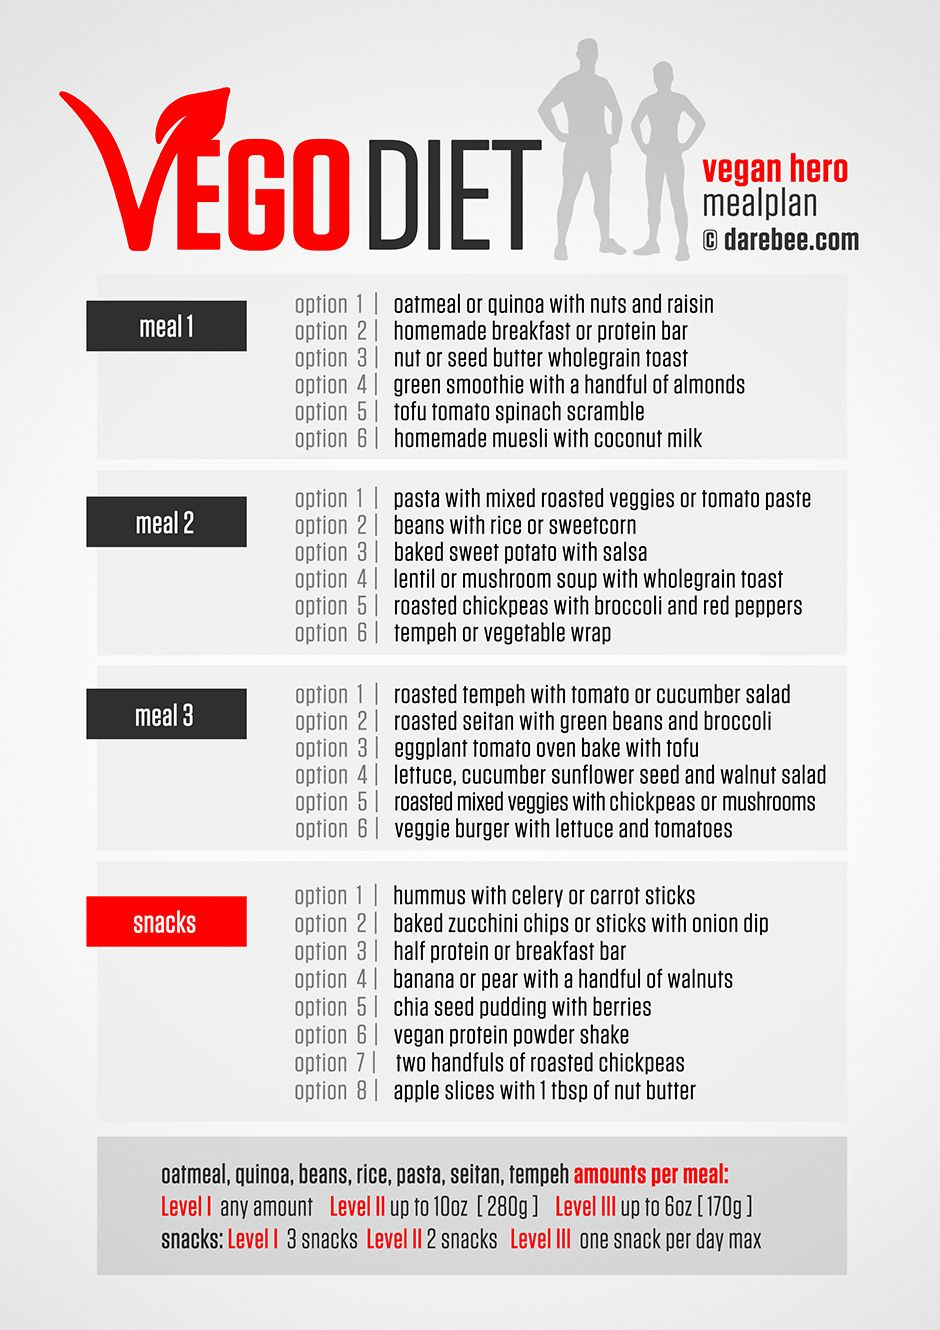 Download High Resolution .PDF poster | Weight Loss Meal ...